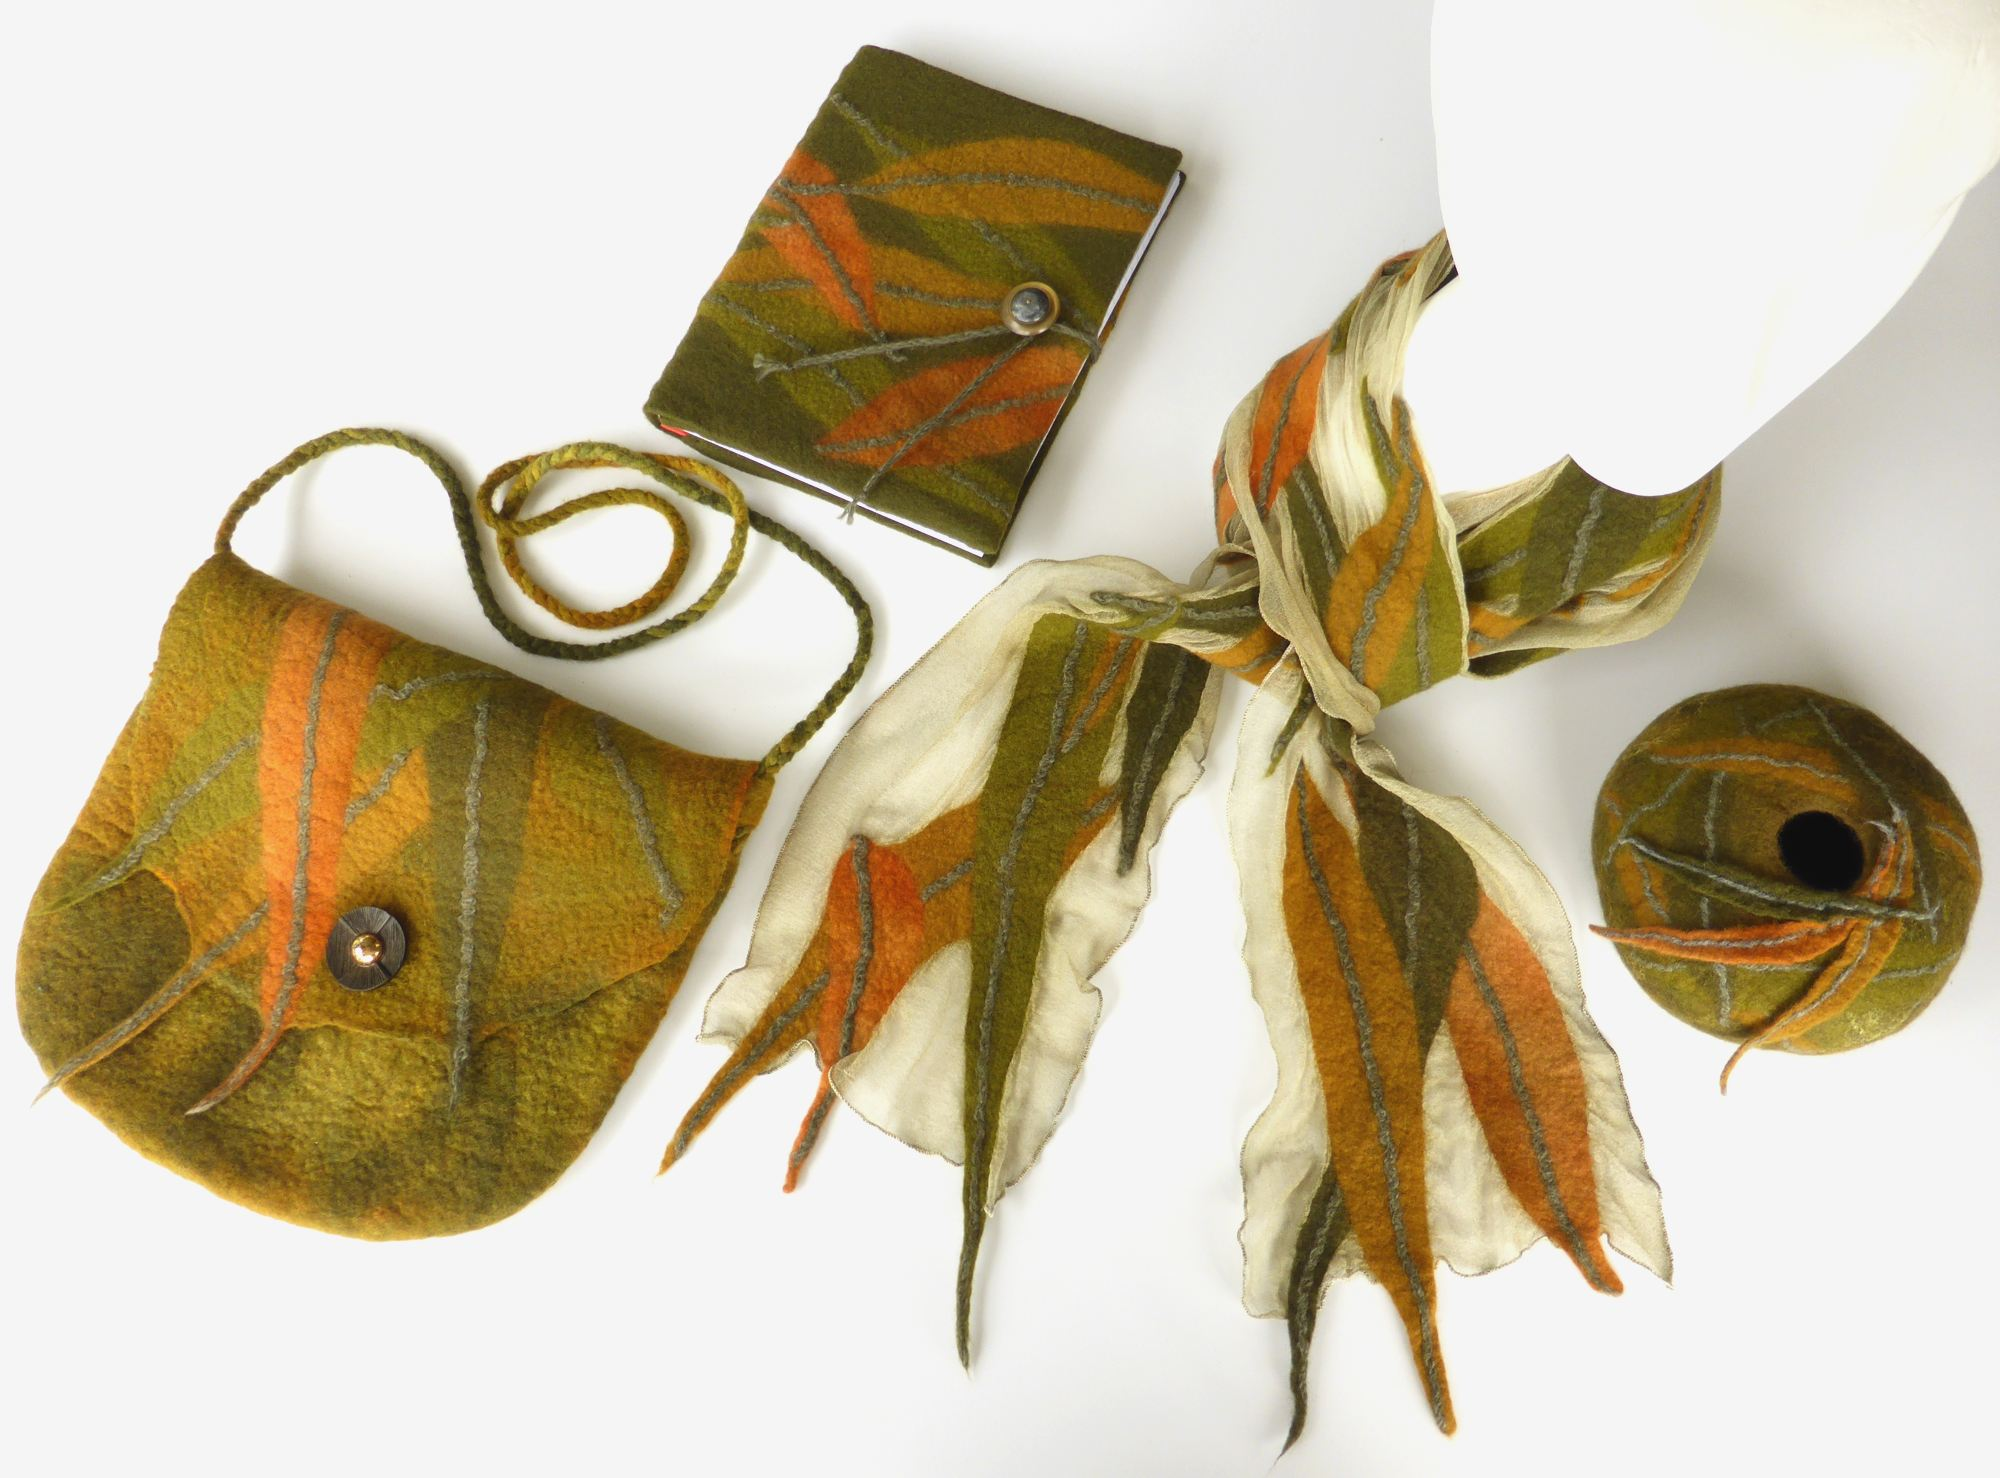 Eucalyptus leaves felt series - scarf, bag and book (2016) by Andrea McCallum